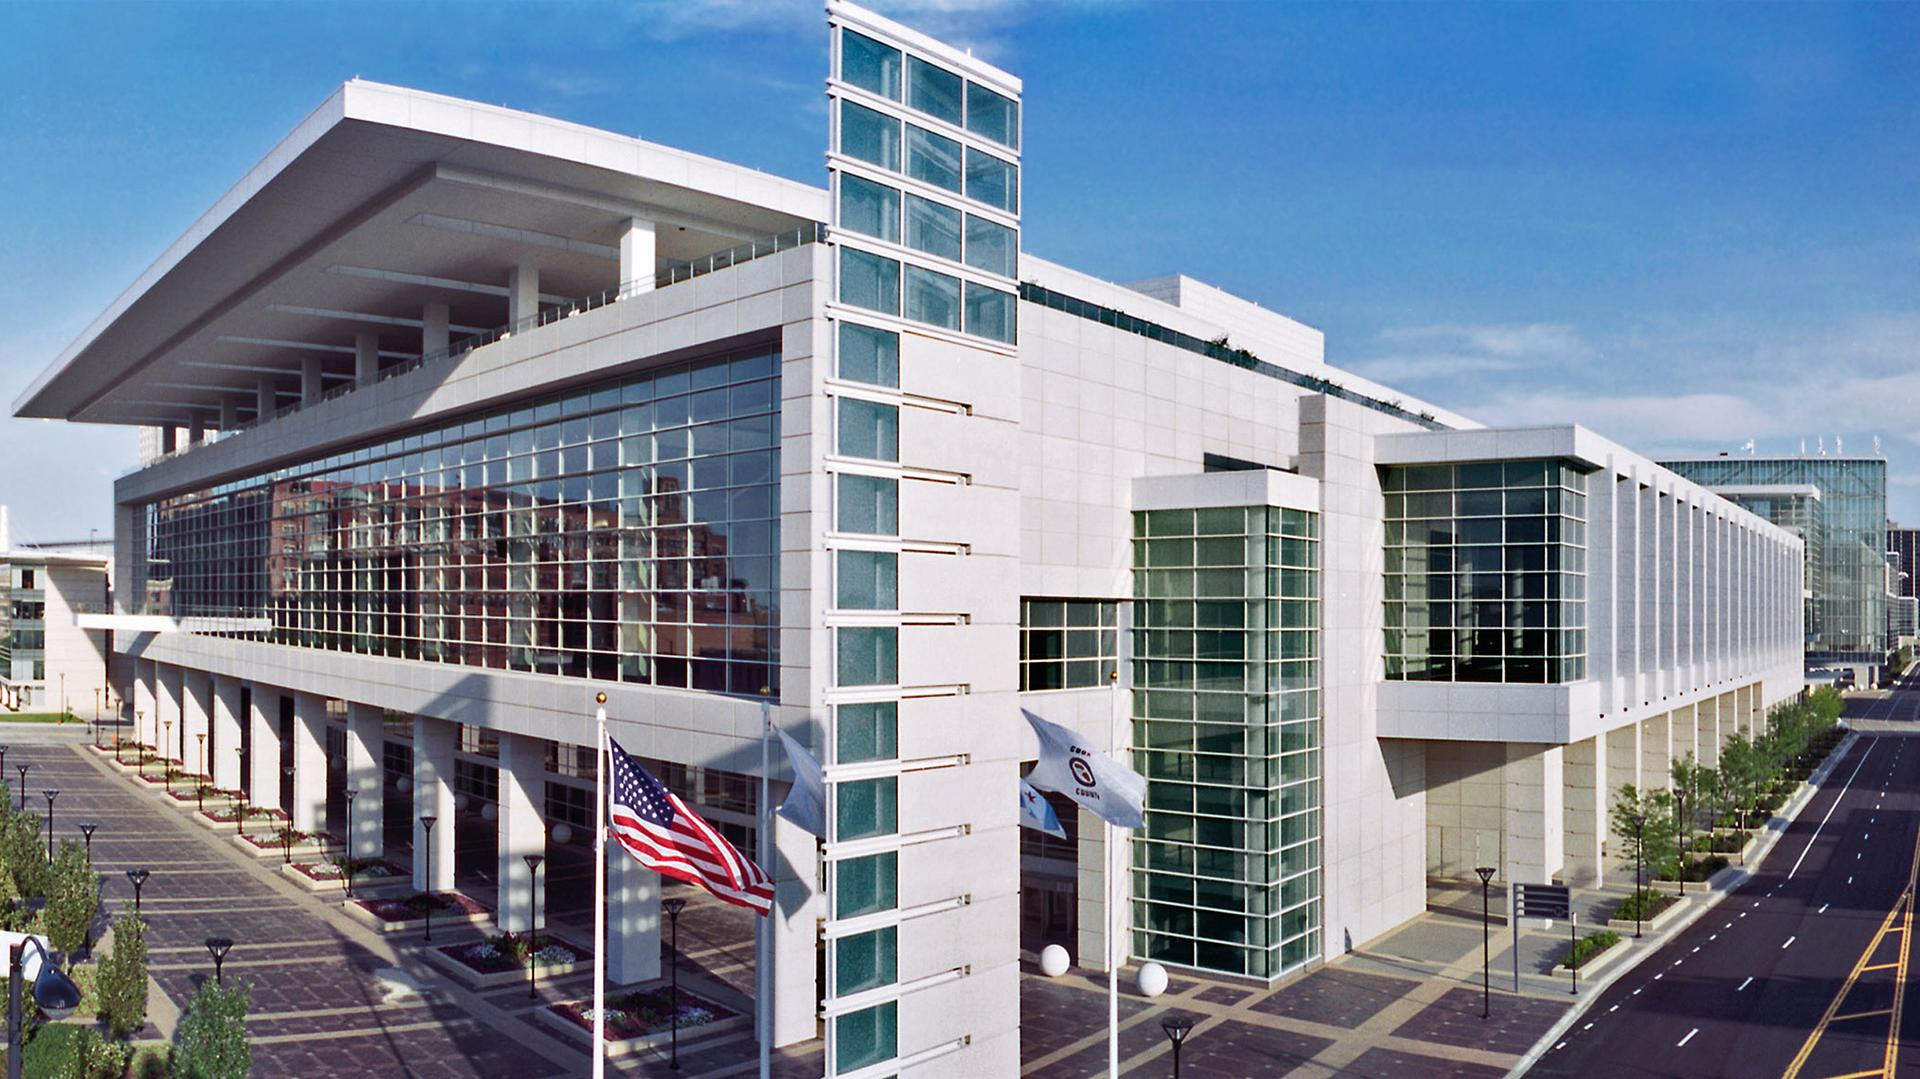 Mccormick Place Convention Center Corporate Events